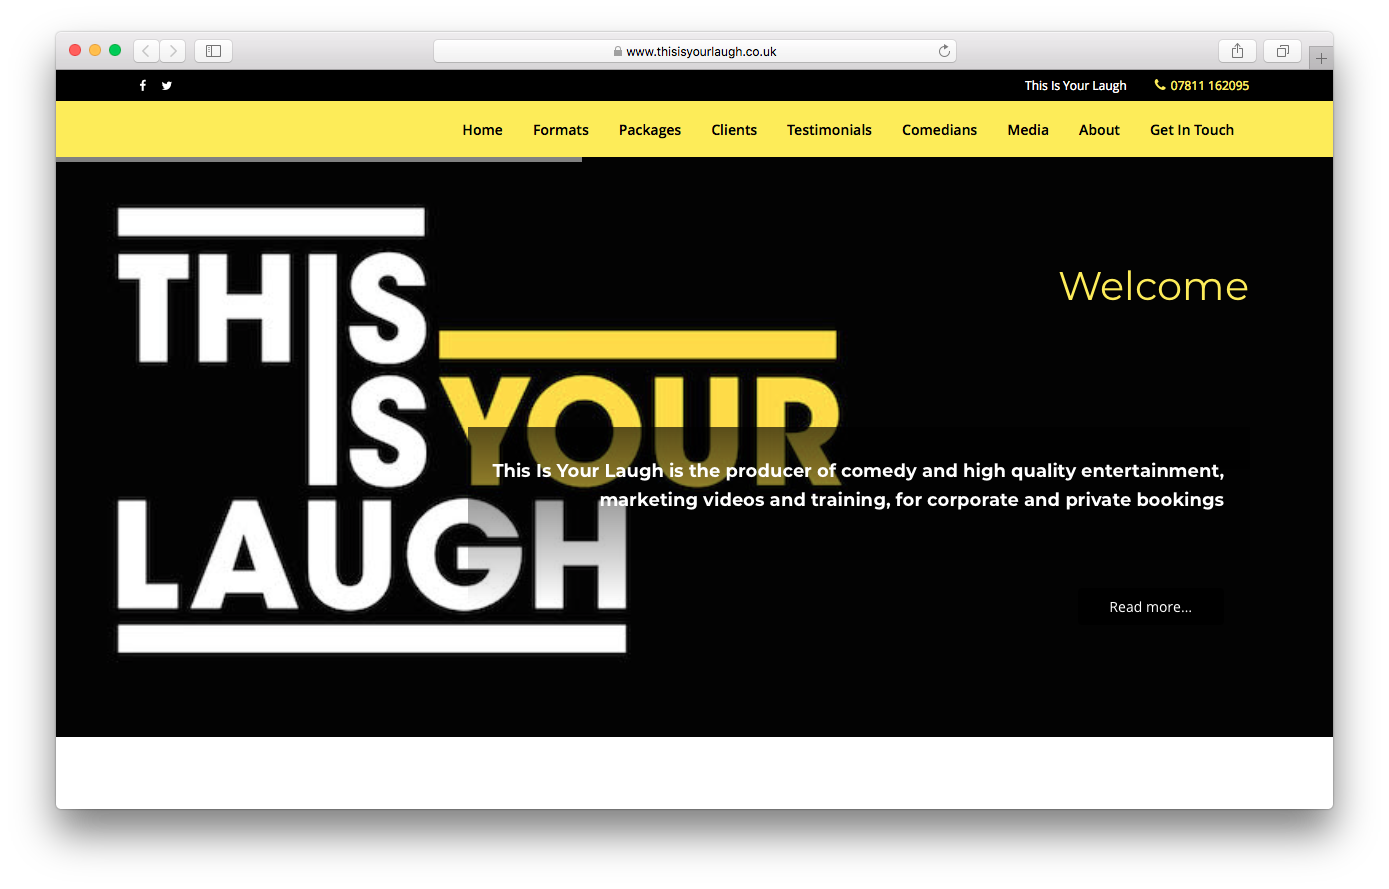 This Is Your Laugh - www.thisisyourlaugh.co.uk